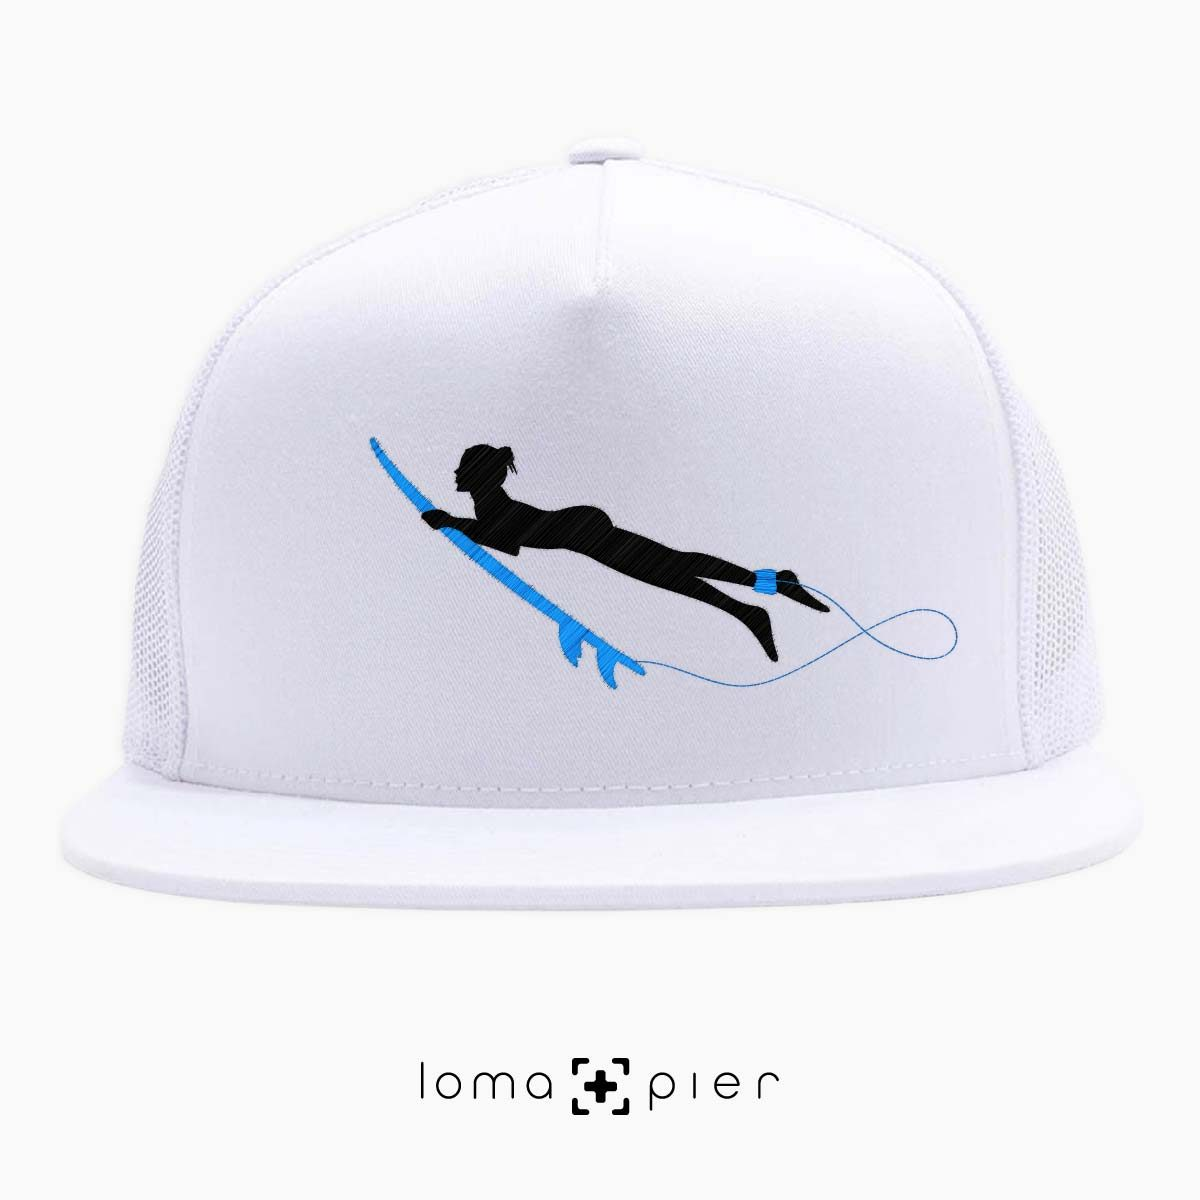 SURFING NAKED nude beach netback hat in white by loma+pier hat store